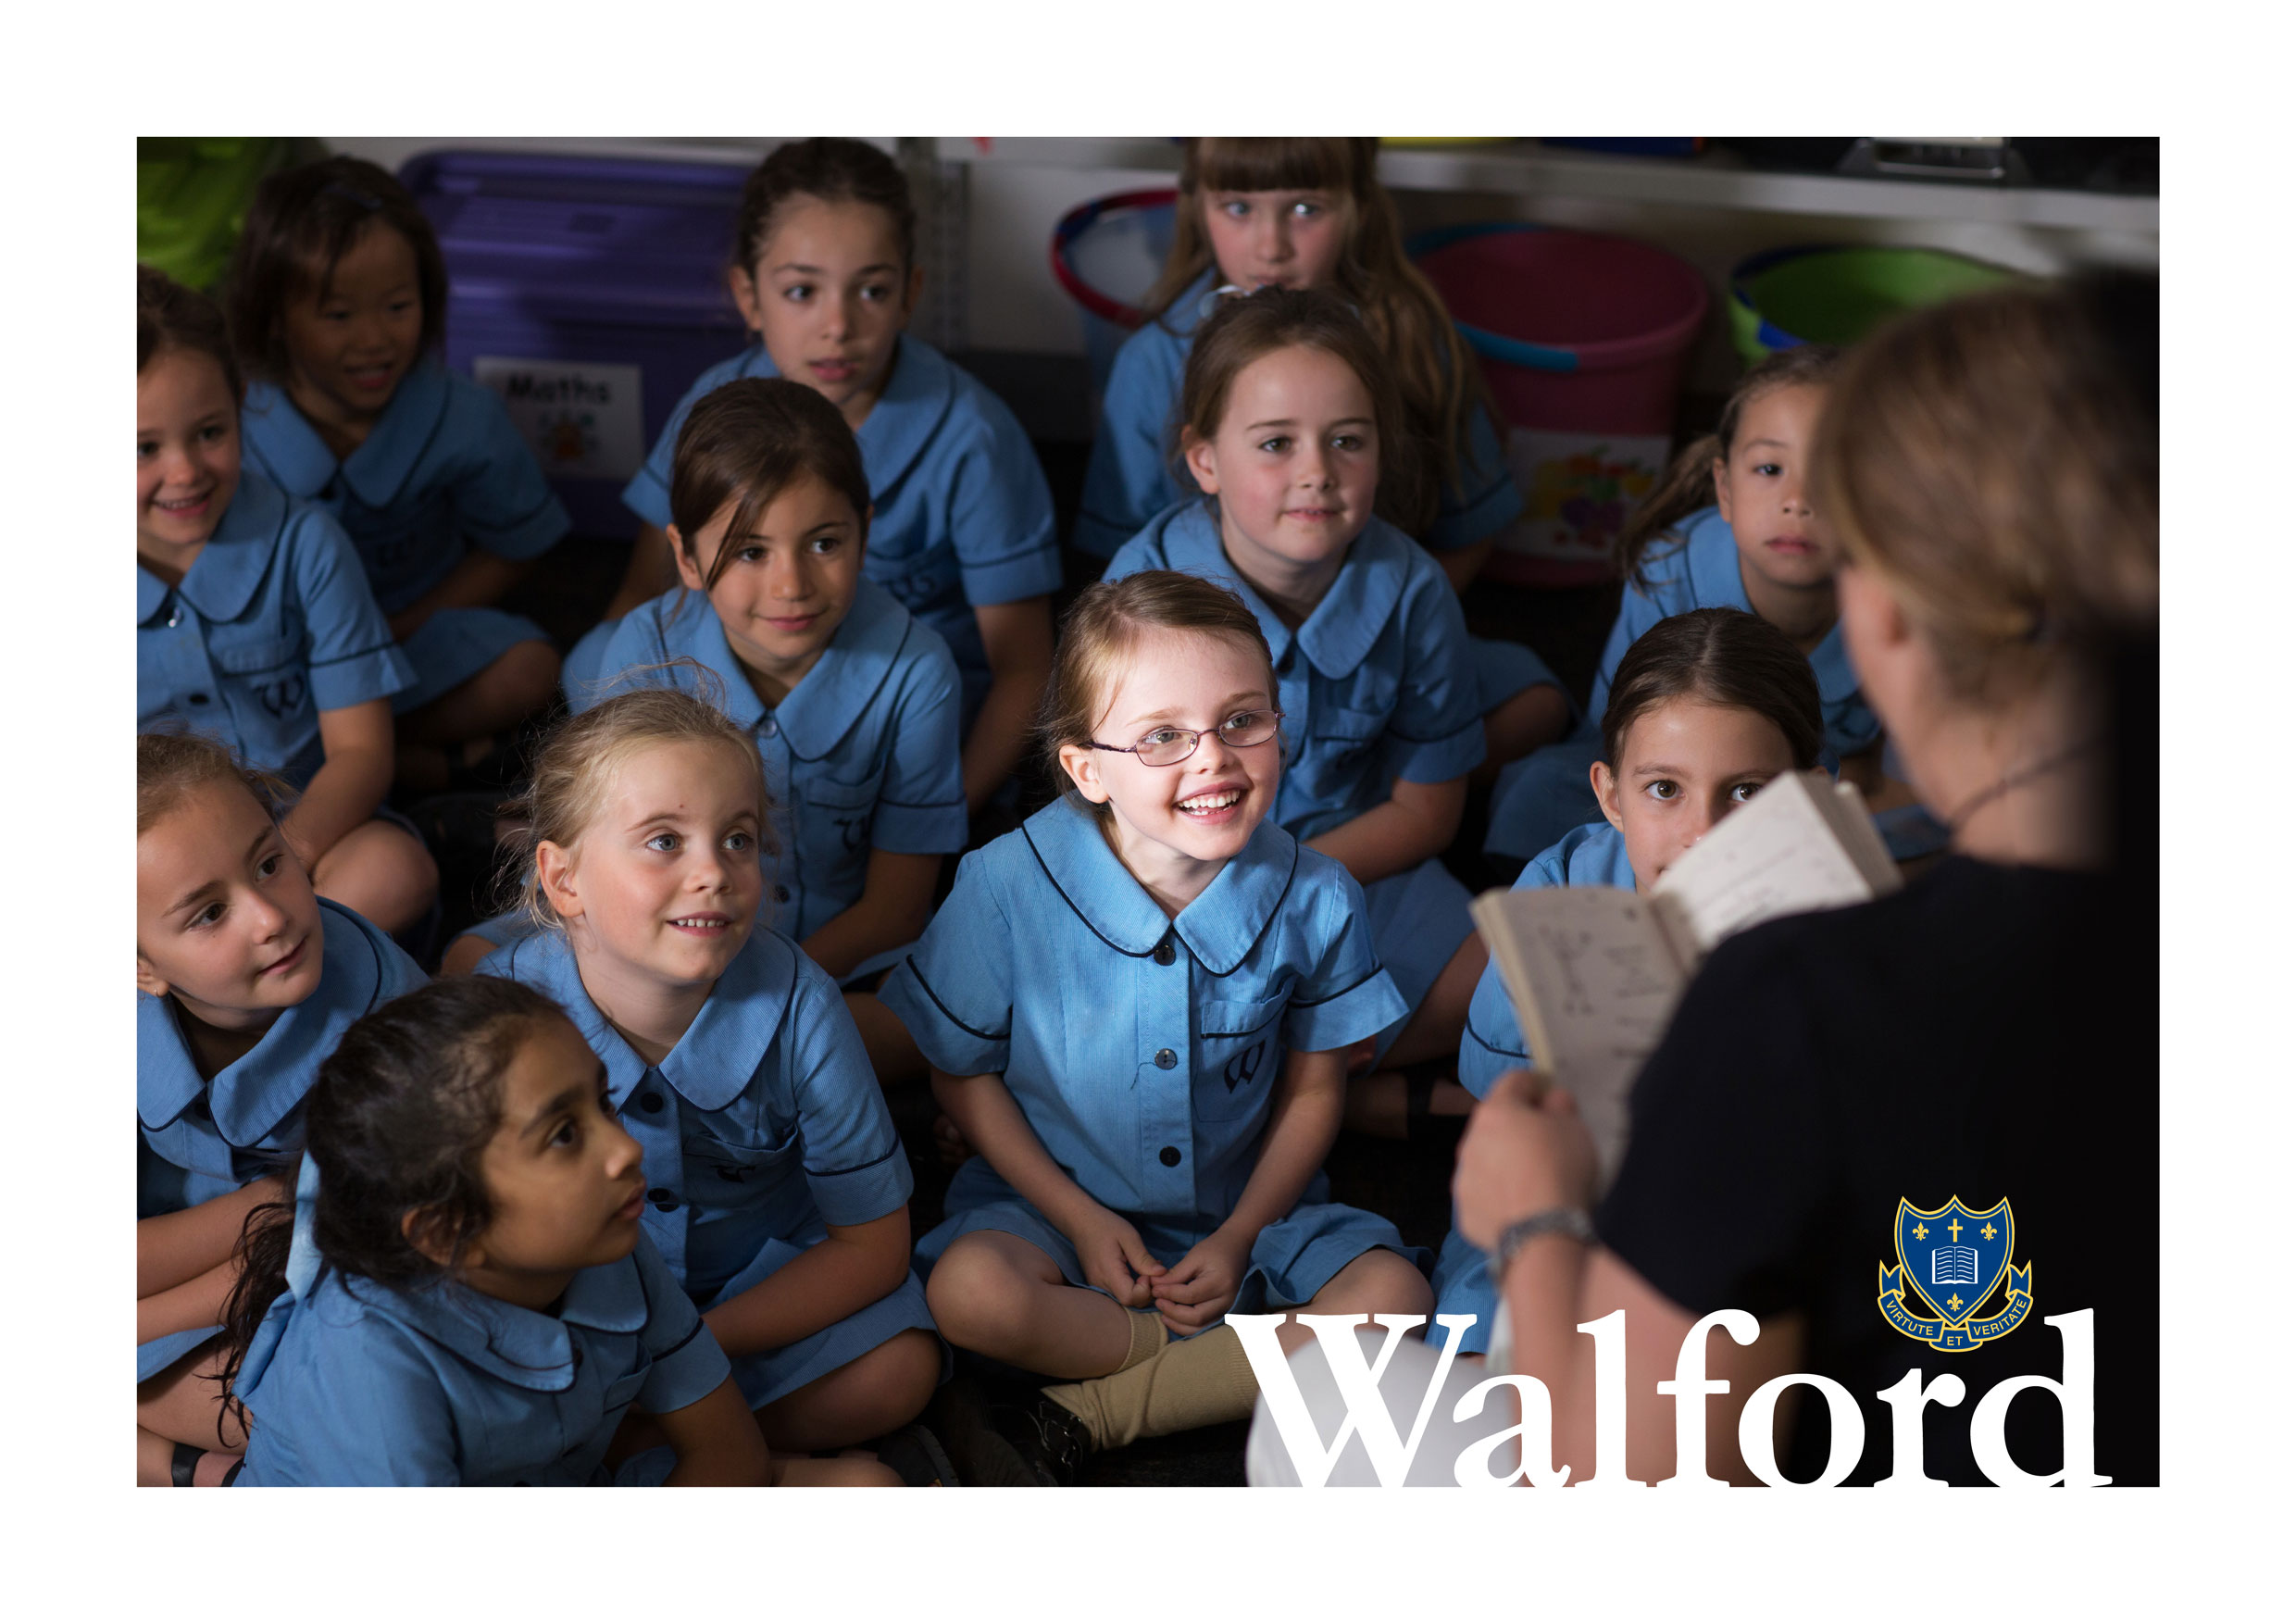 WALFORD-BRANDING-IMAGES_9